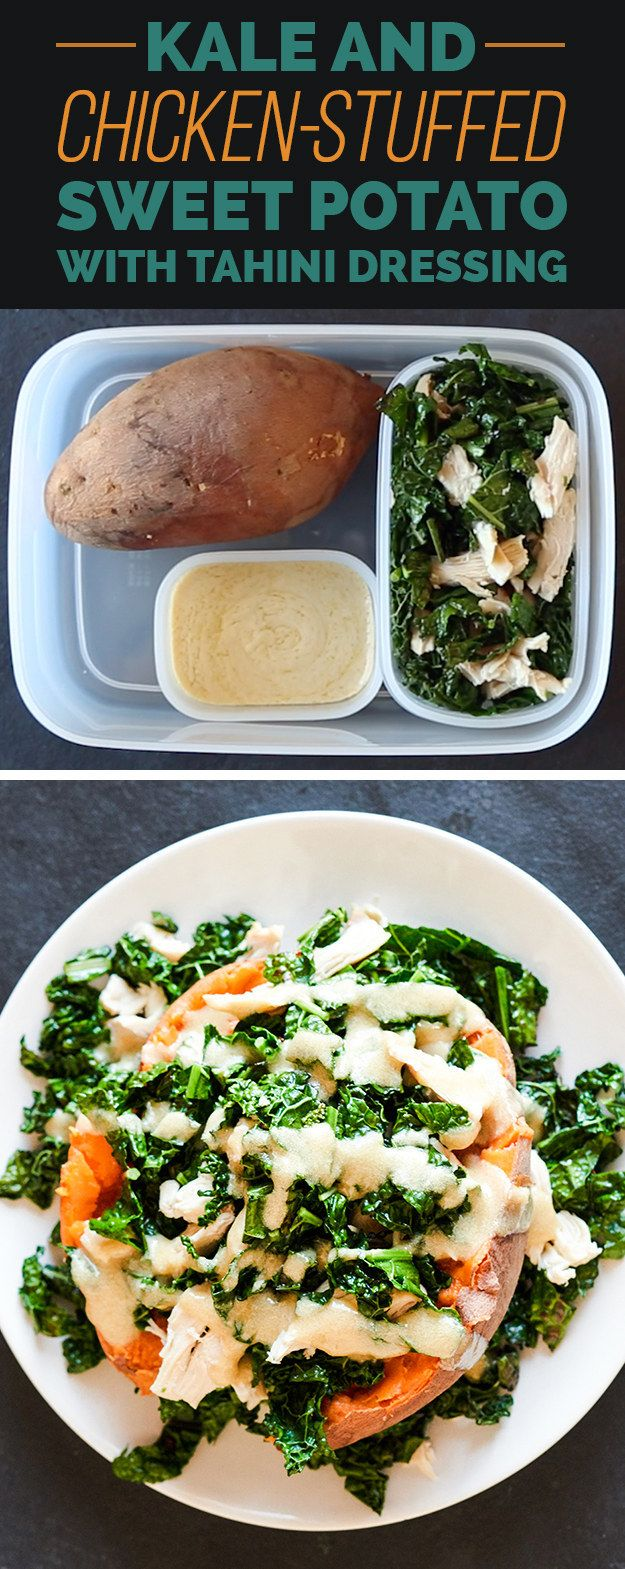 THURSDAY: Kale and Chicken-Stuffed Sweet Potato | Here's How To Pack 5 ...